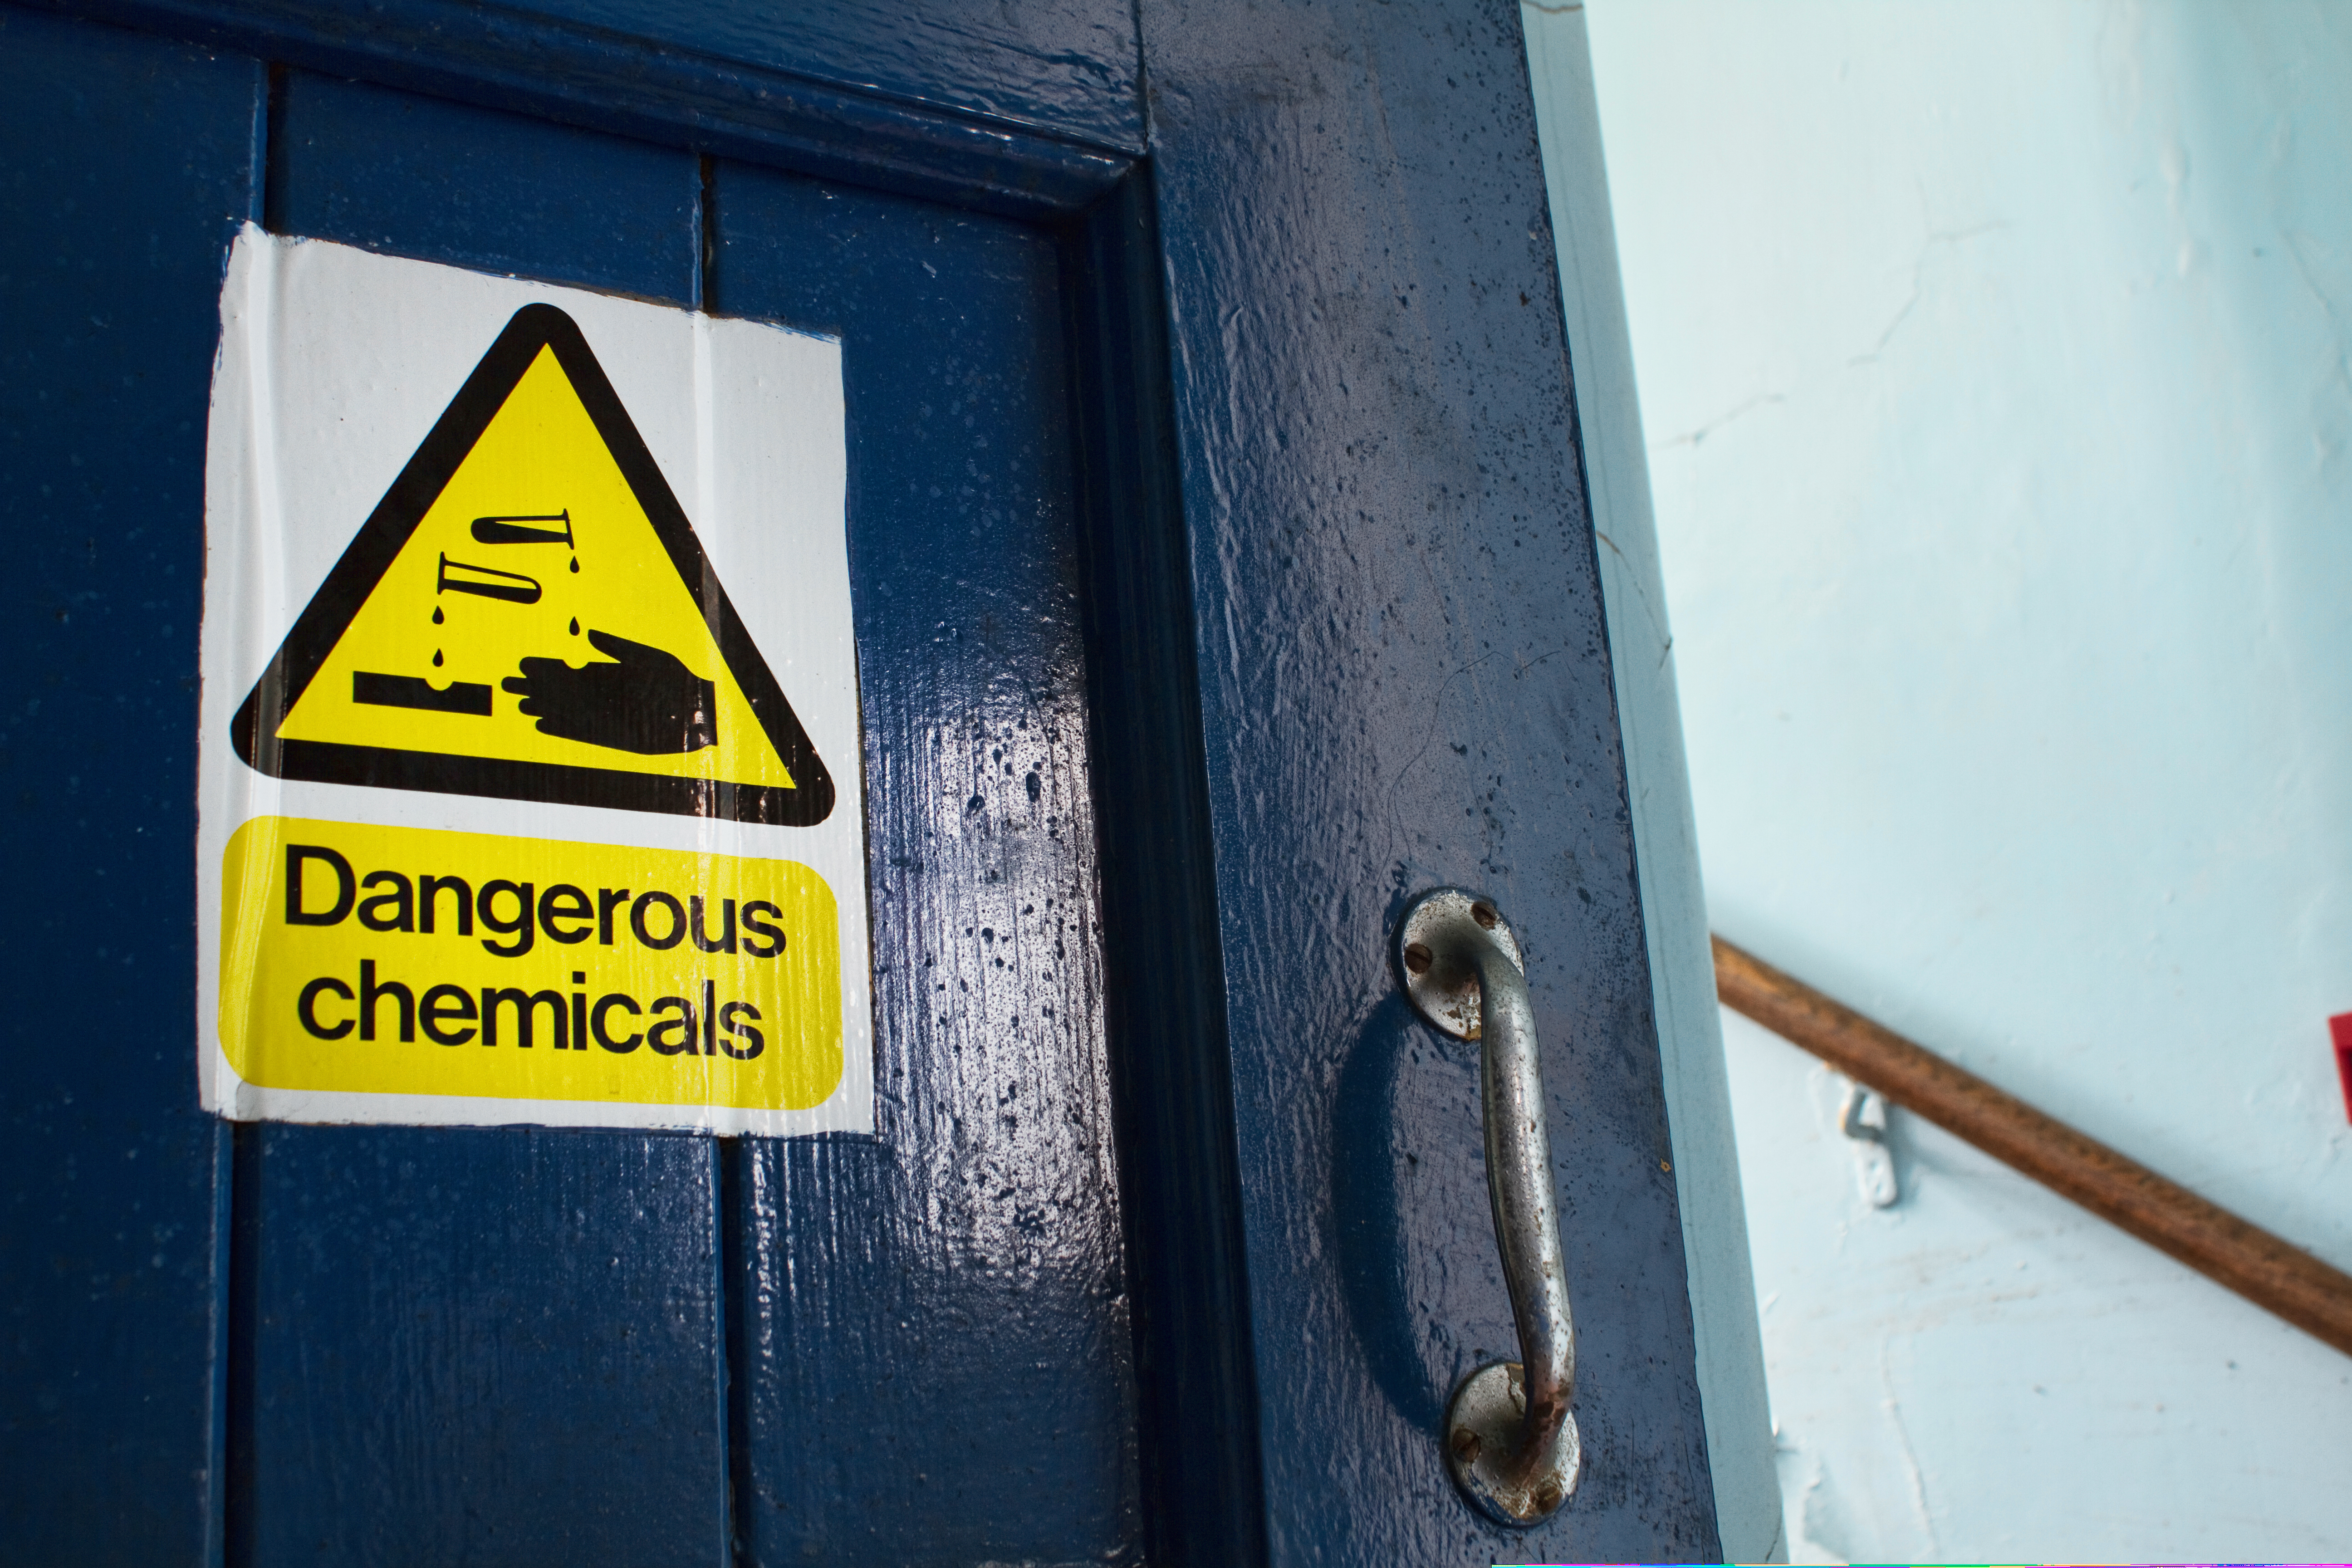 Dangerous Chemicals by Tom Blackwell